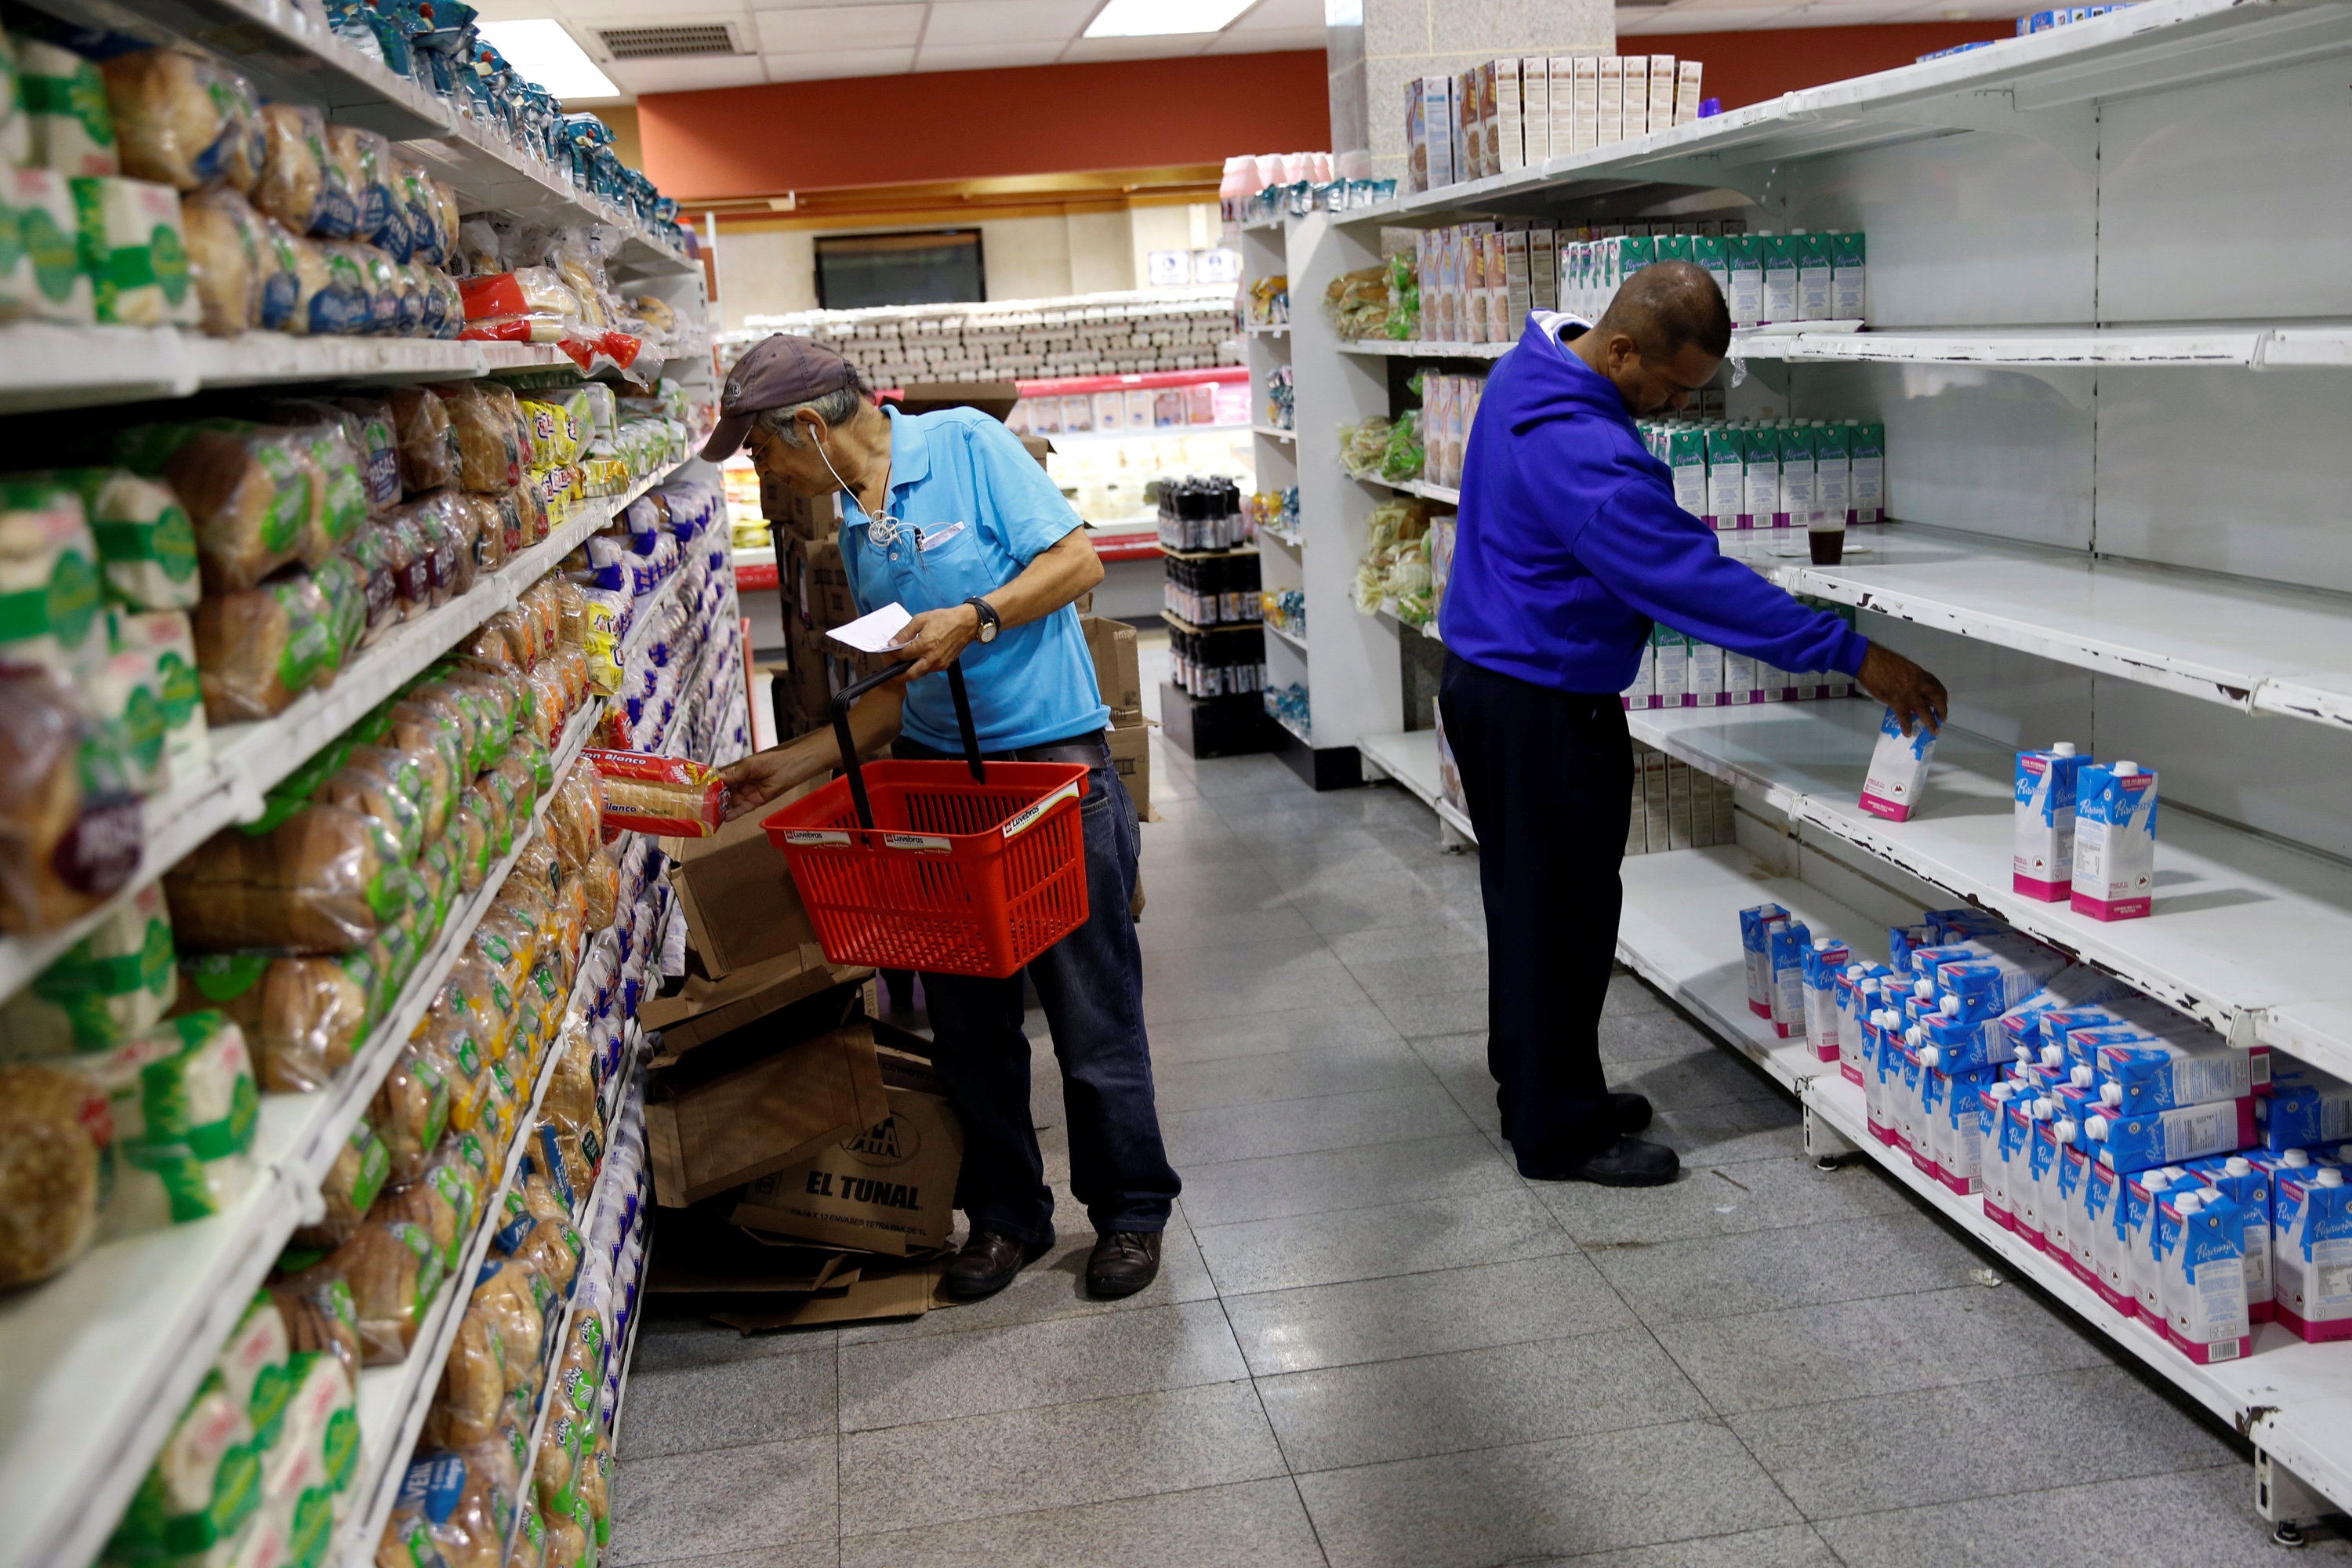 Venezuela's people looking for affordable groceries